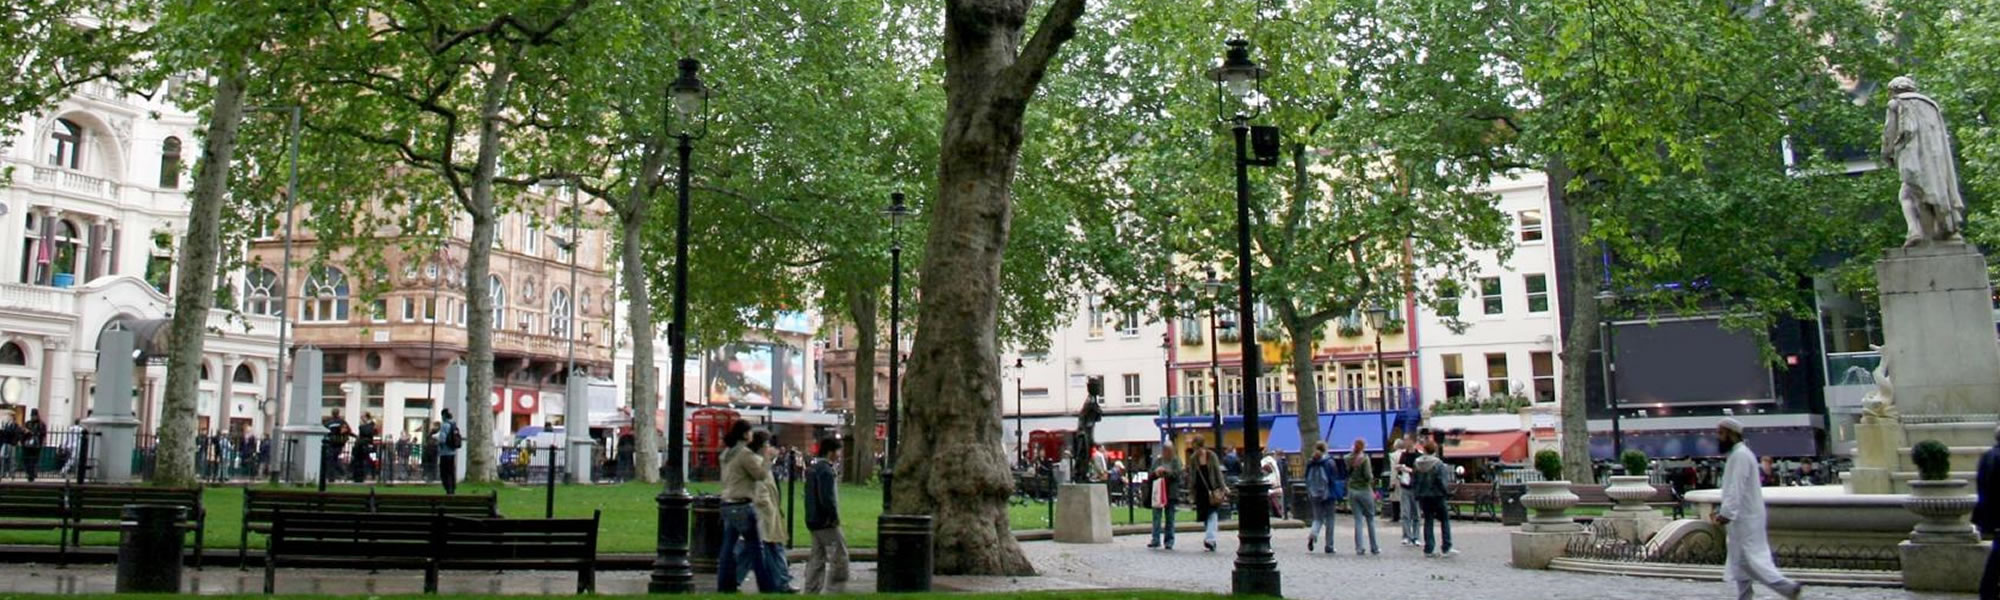 Bb Cheap Hotels Near Leicester Square London